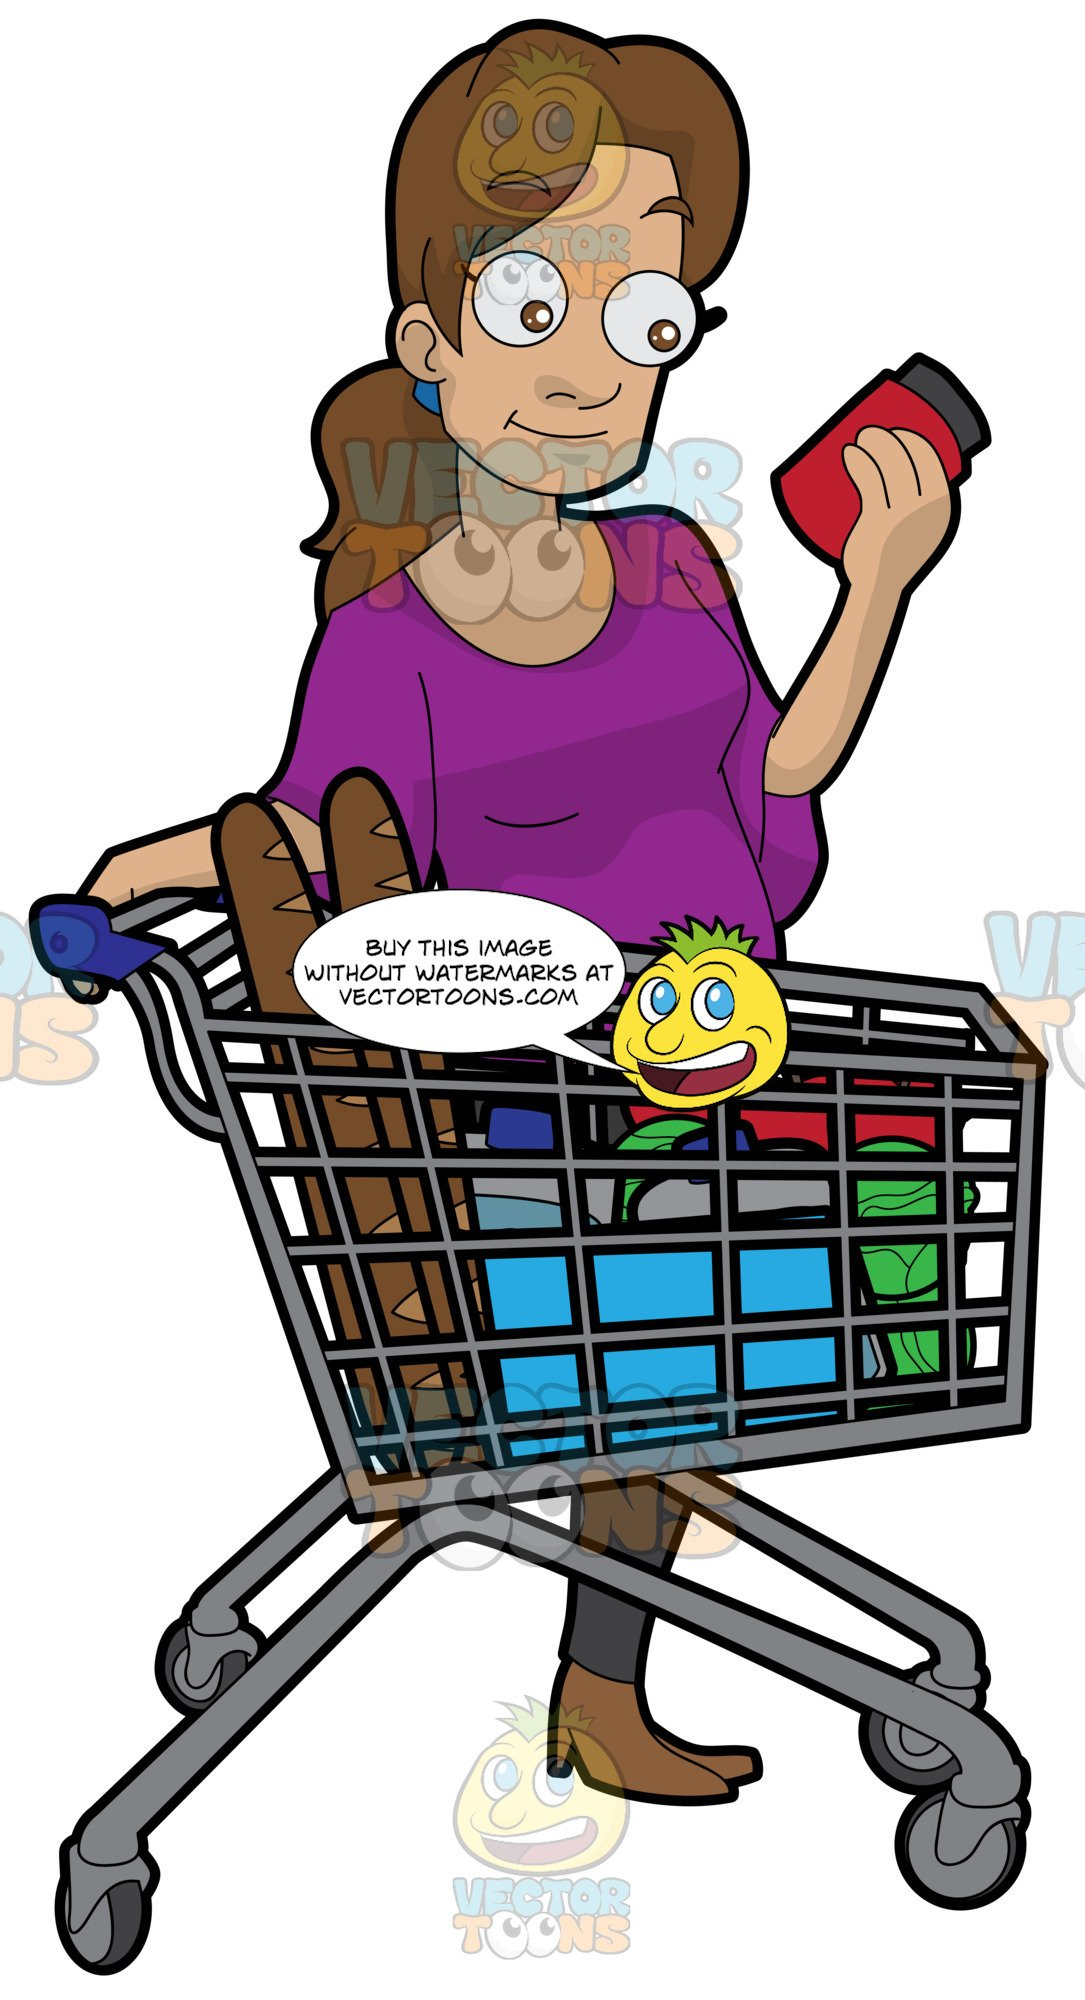 A Woman Checking Some Ingredients On A Food Item Before Buying.